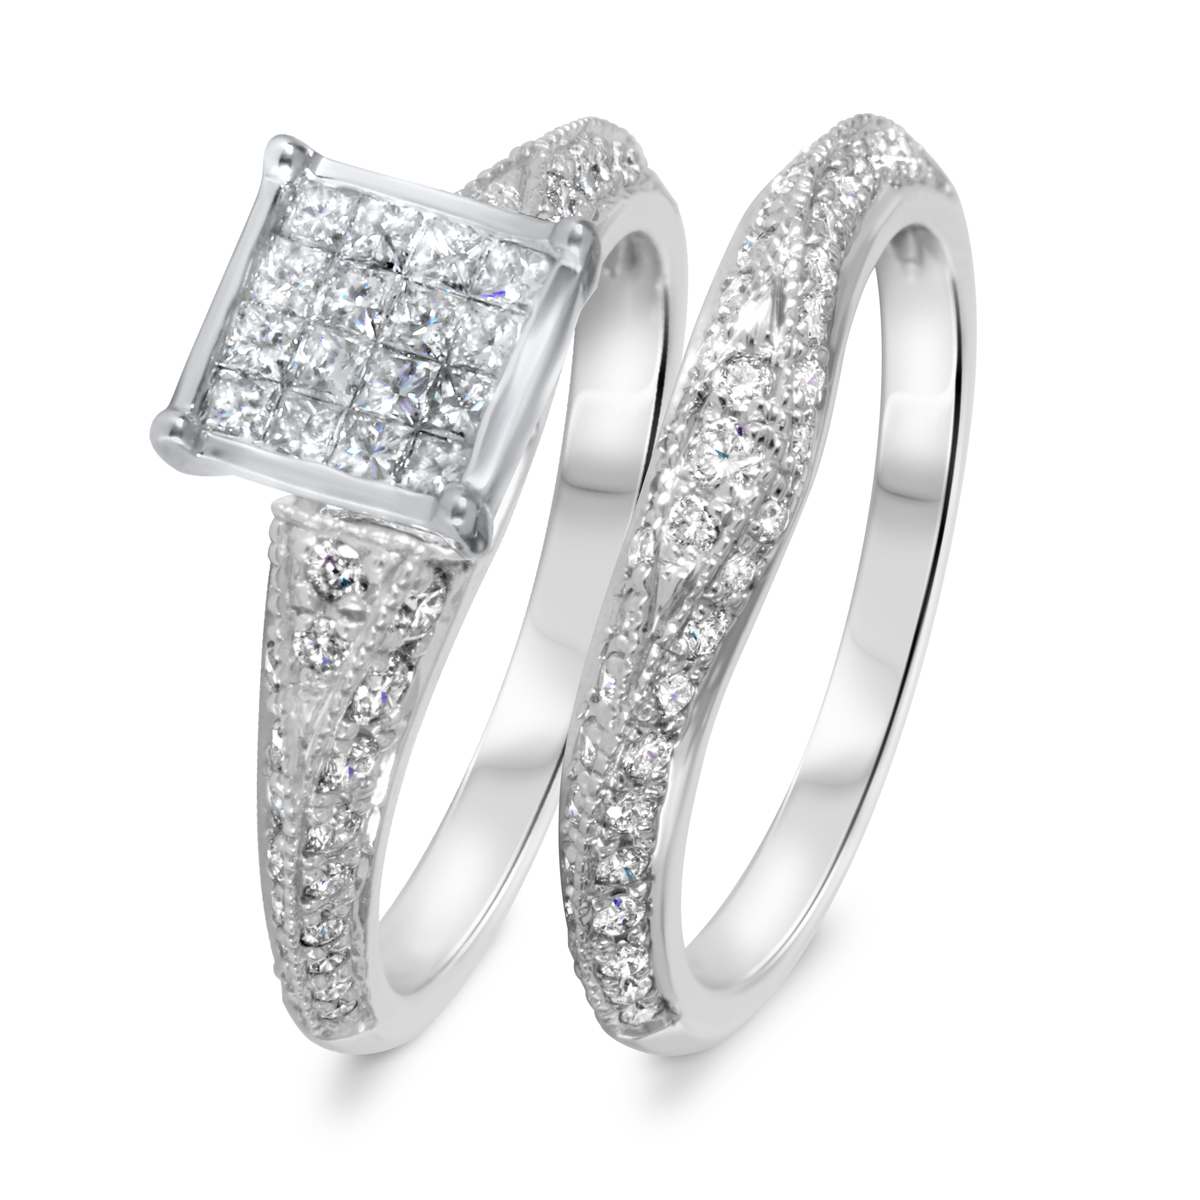 1 1/4 CT. T.W. Diamond Women's Bridal Wedding Ring Set 10K White Gold